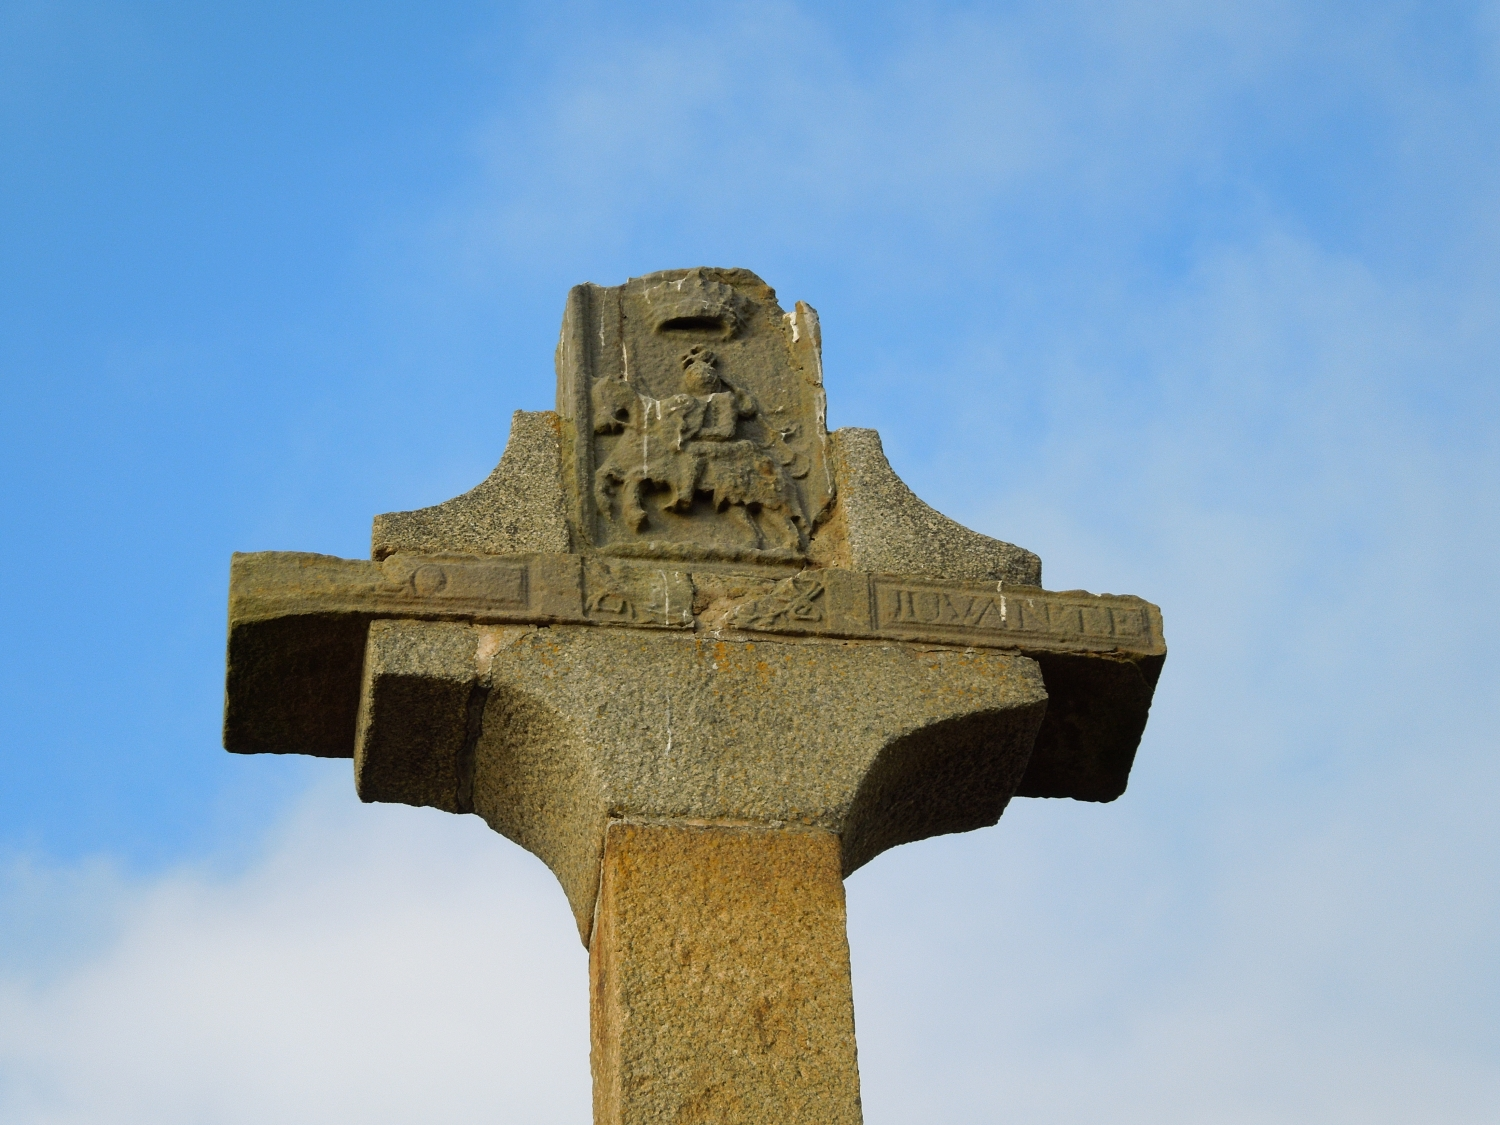 Photograph of Macduff Market Cross